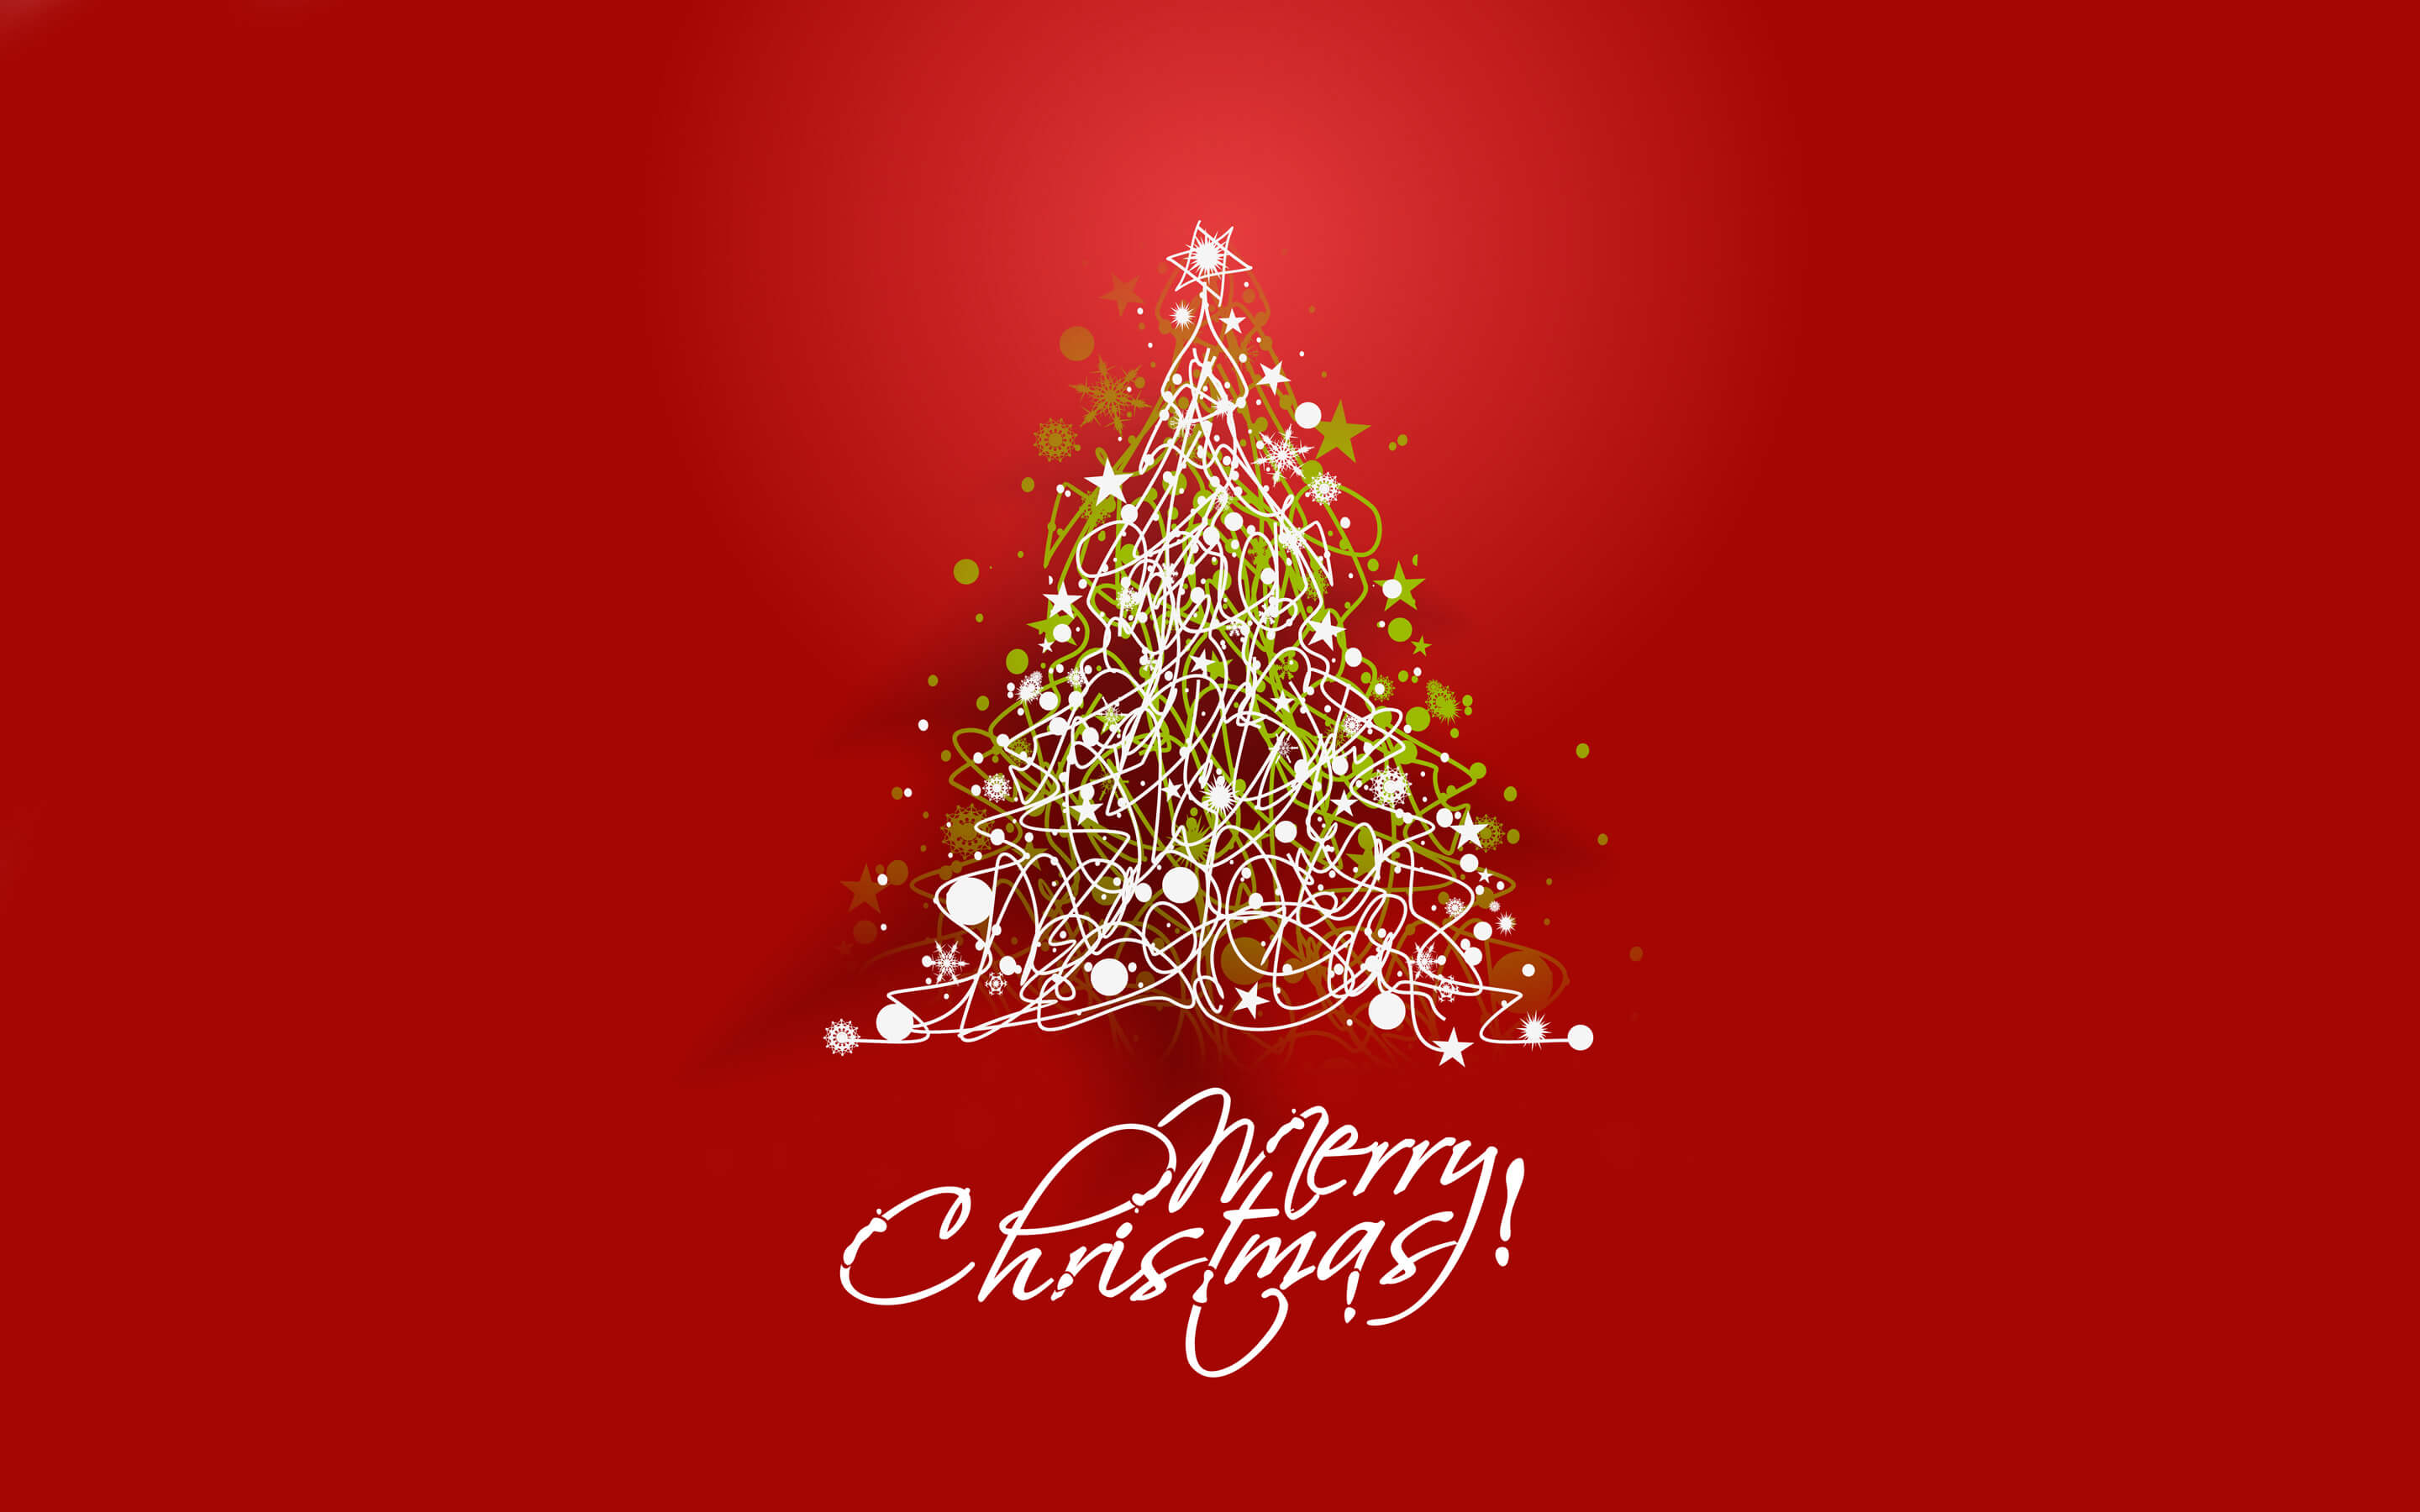 Merry Christmas Wallpapers 2017